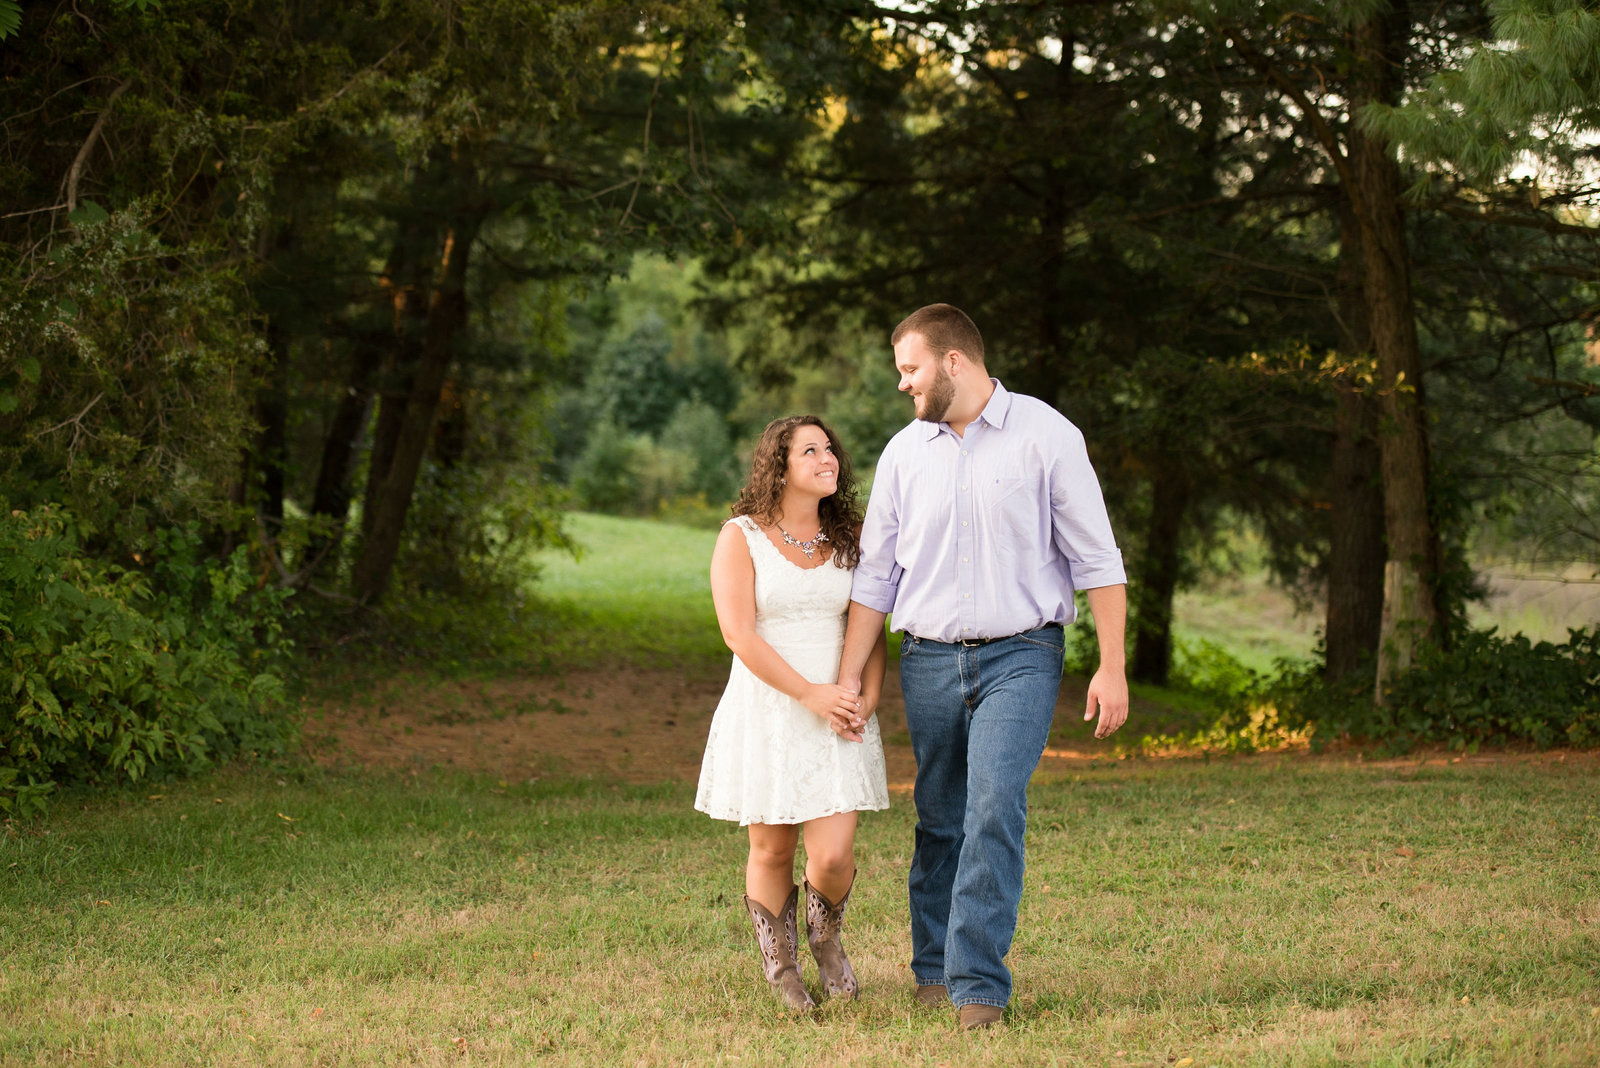 NJ_Rustic_Engagement_Photography133